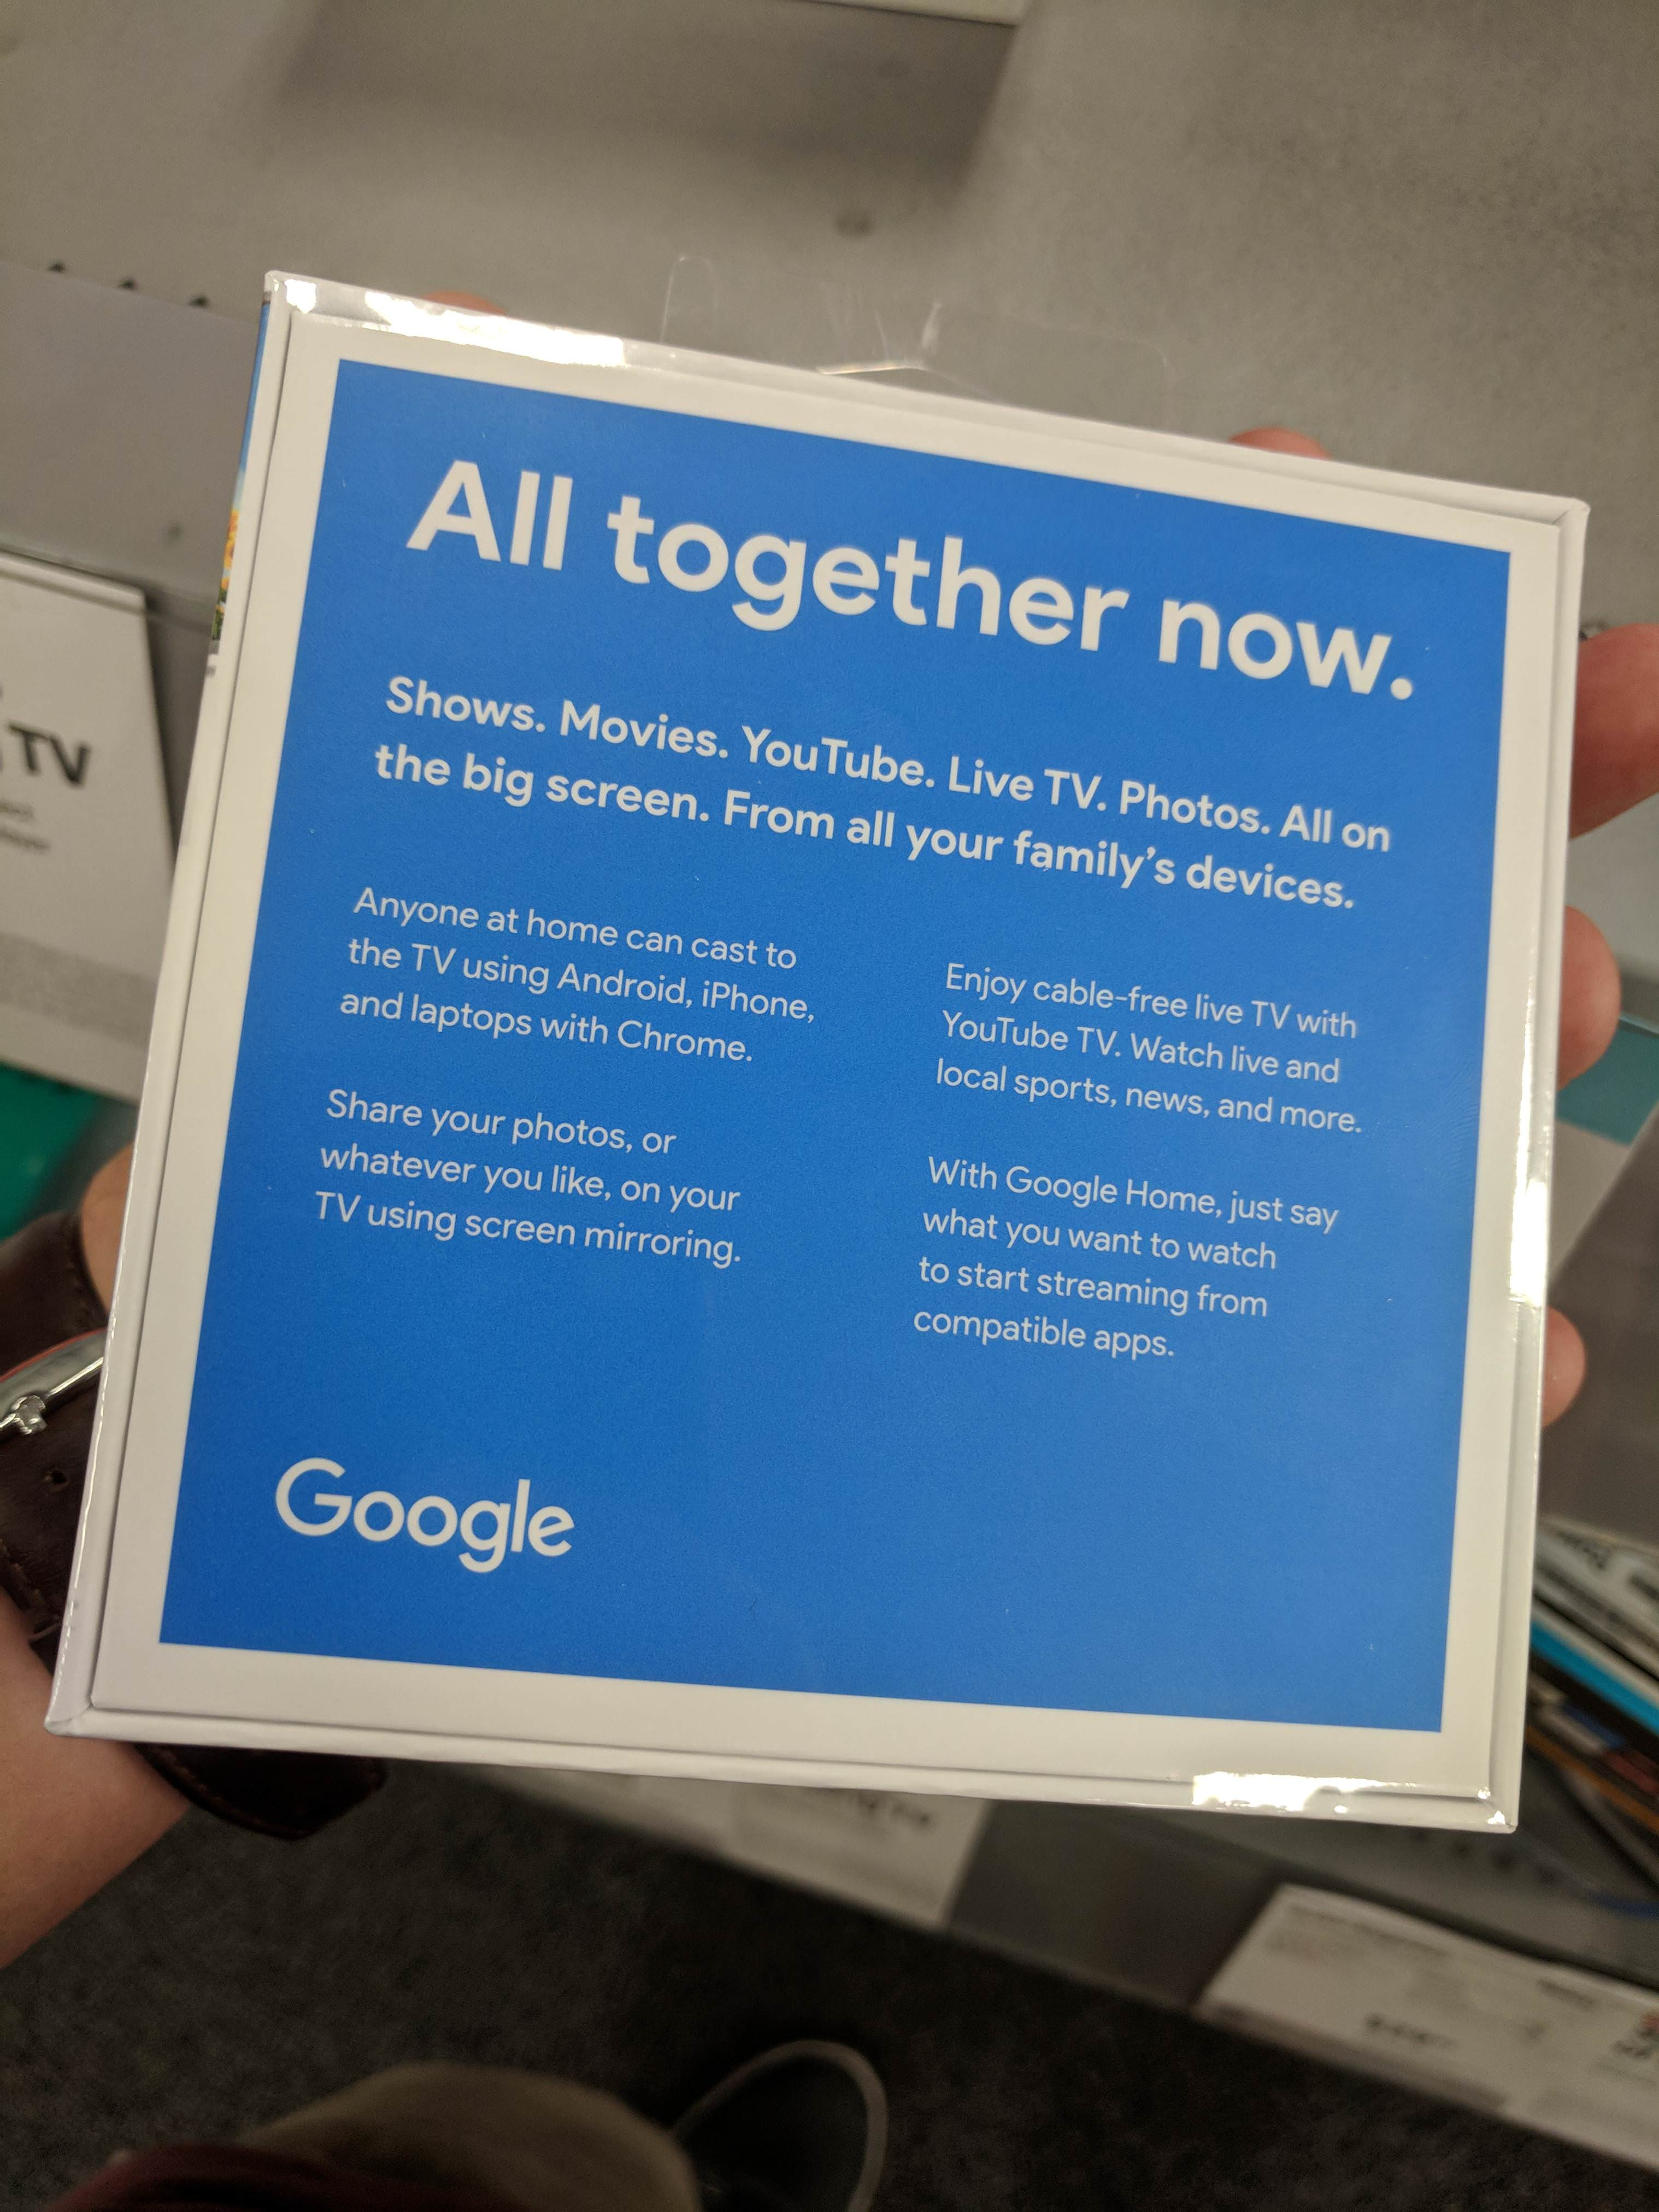 Update: More photos] Someone bought a 3rd Gen Chromecast